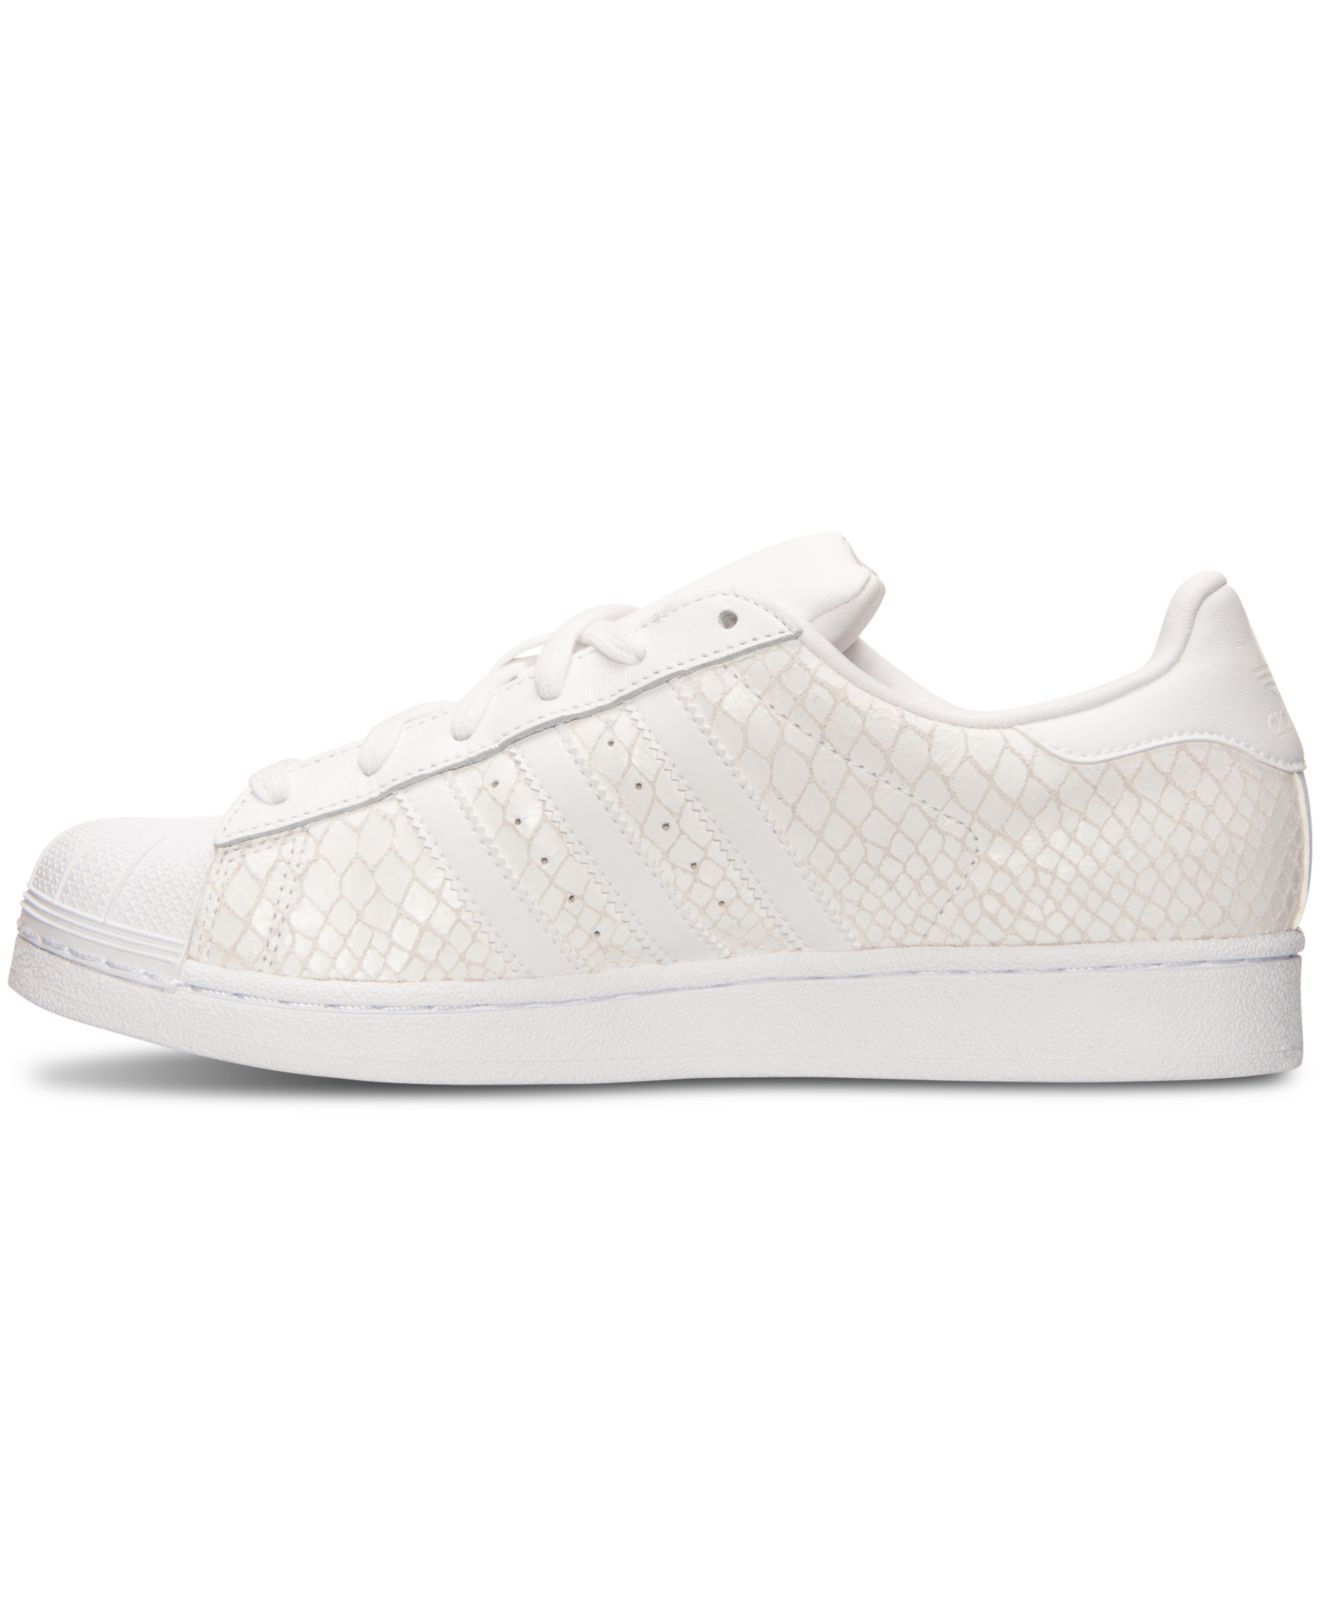 Lyst - adidas Originals Women s Superstar Casual Sneakers From Finish Line  in White eeb05f26e